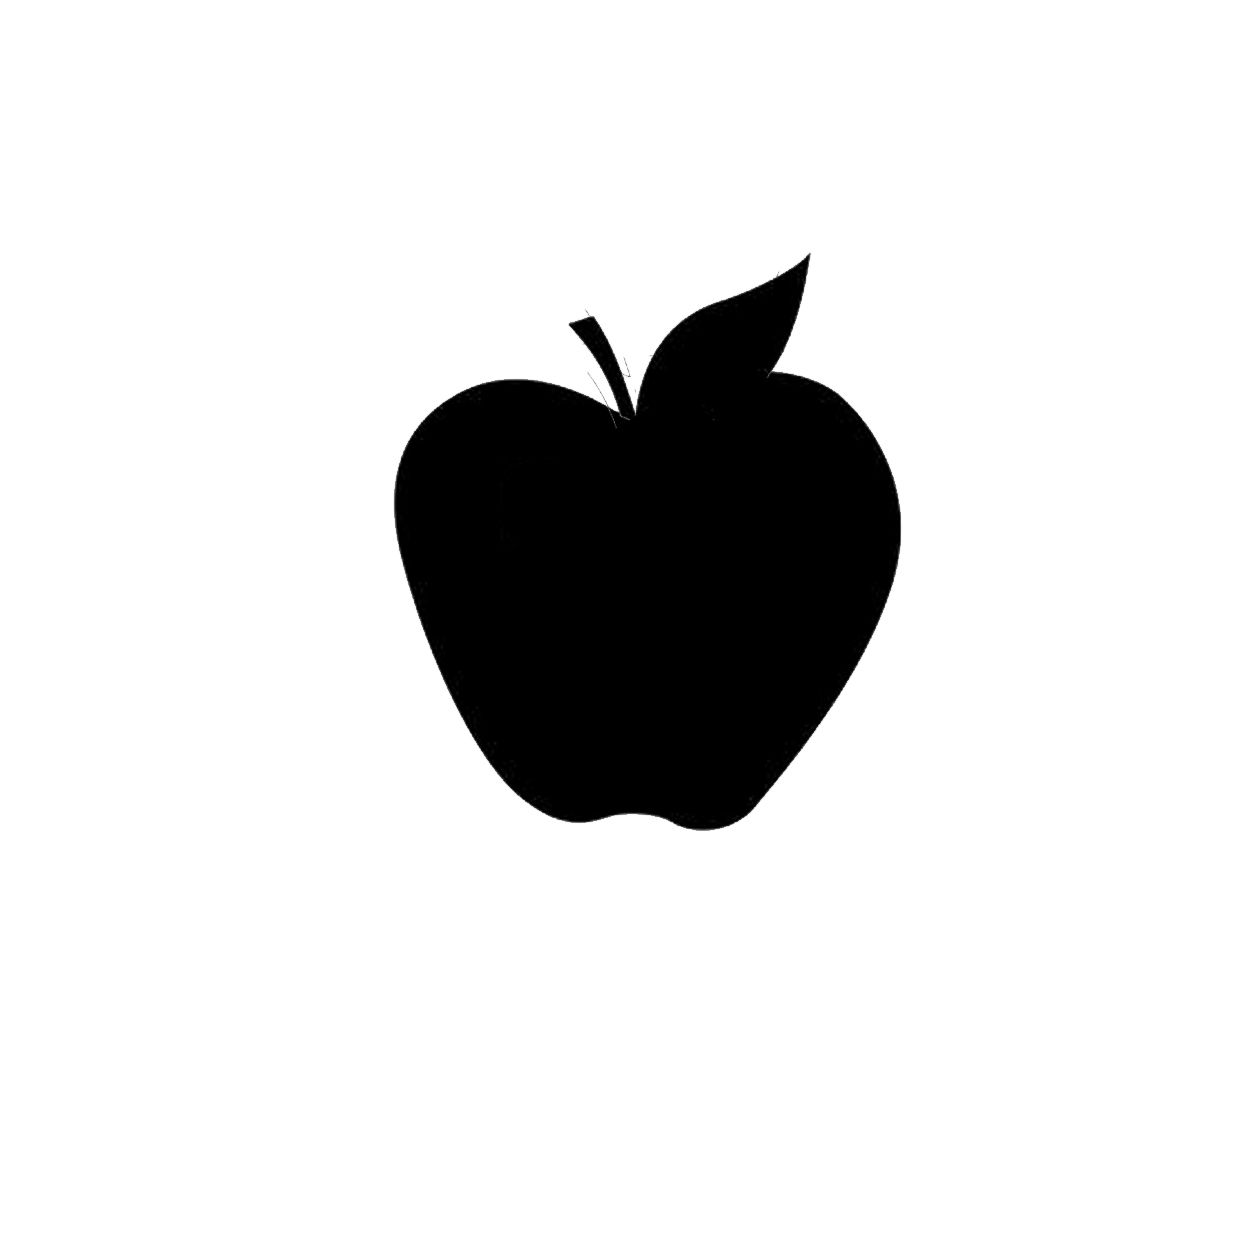 Apple Black Silhouette With A Leaf Free Vector Icons Designed By Freepik Free Icons Black Silhouette Apple Silhouette